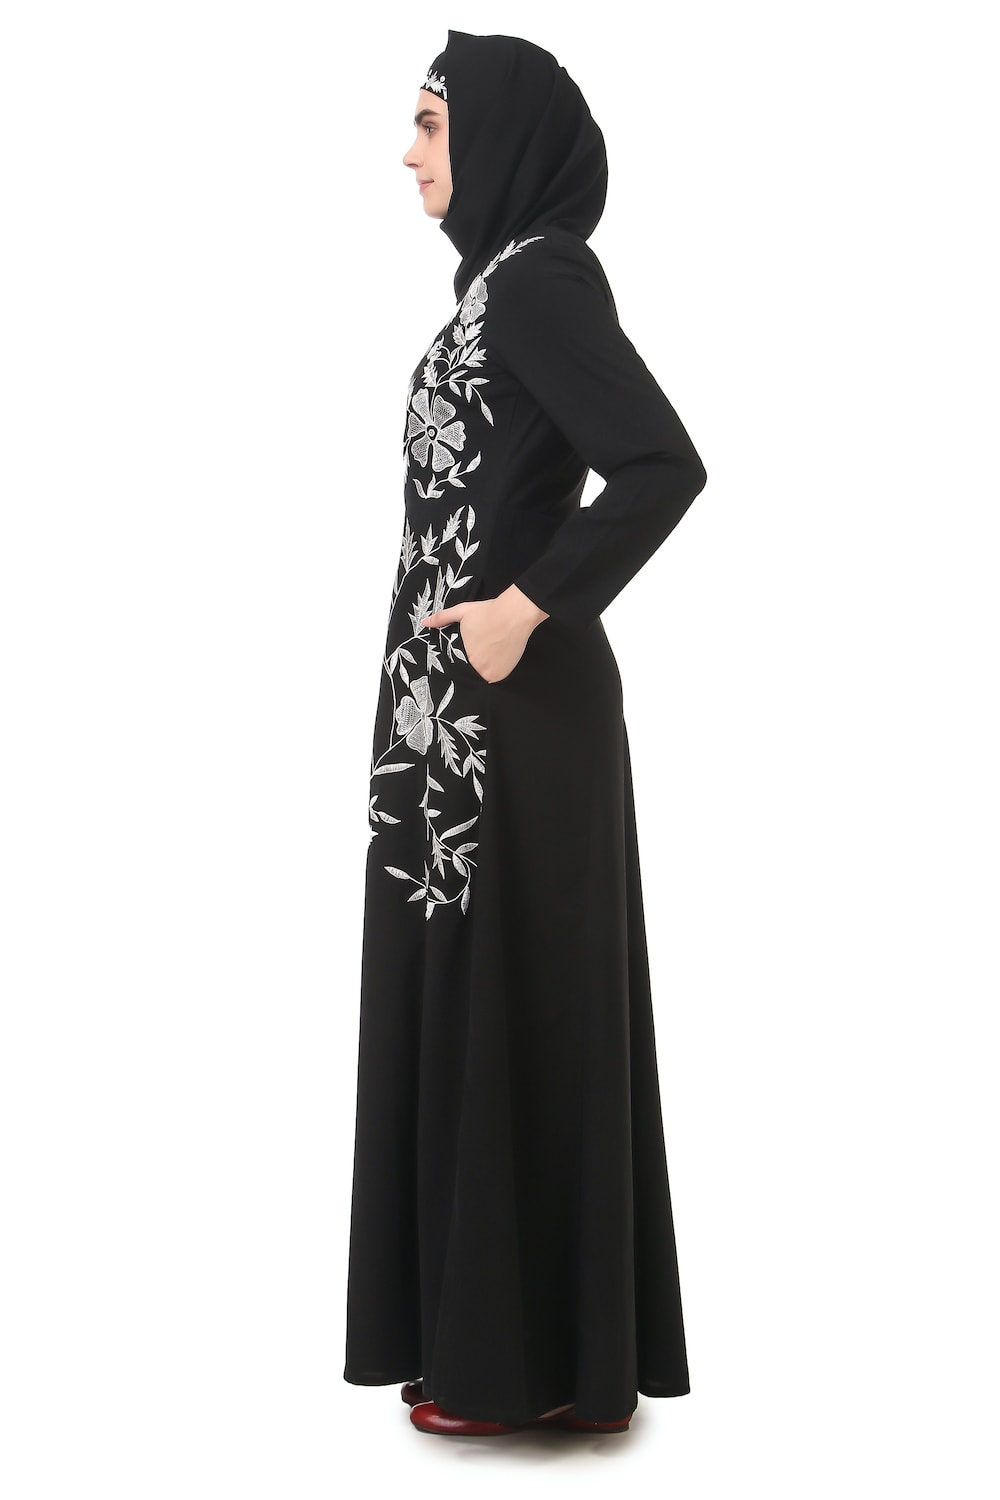 Contrast Embroidery Heavily Flared Abaya Side